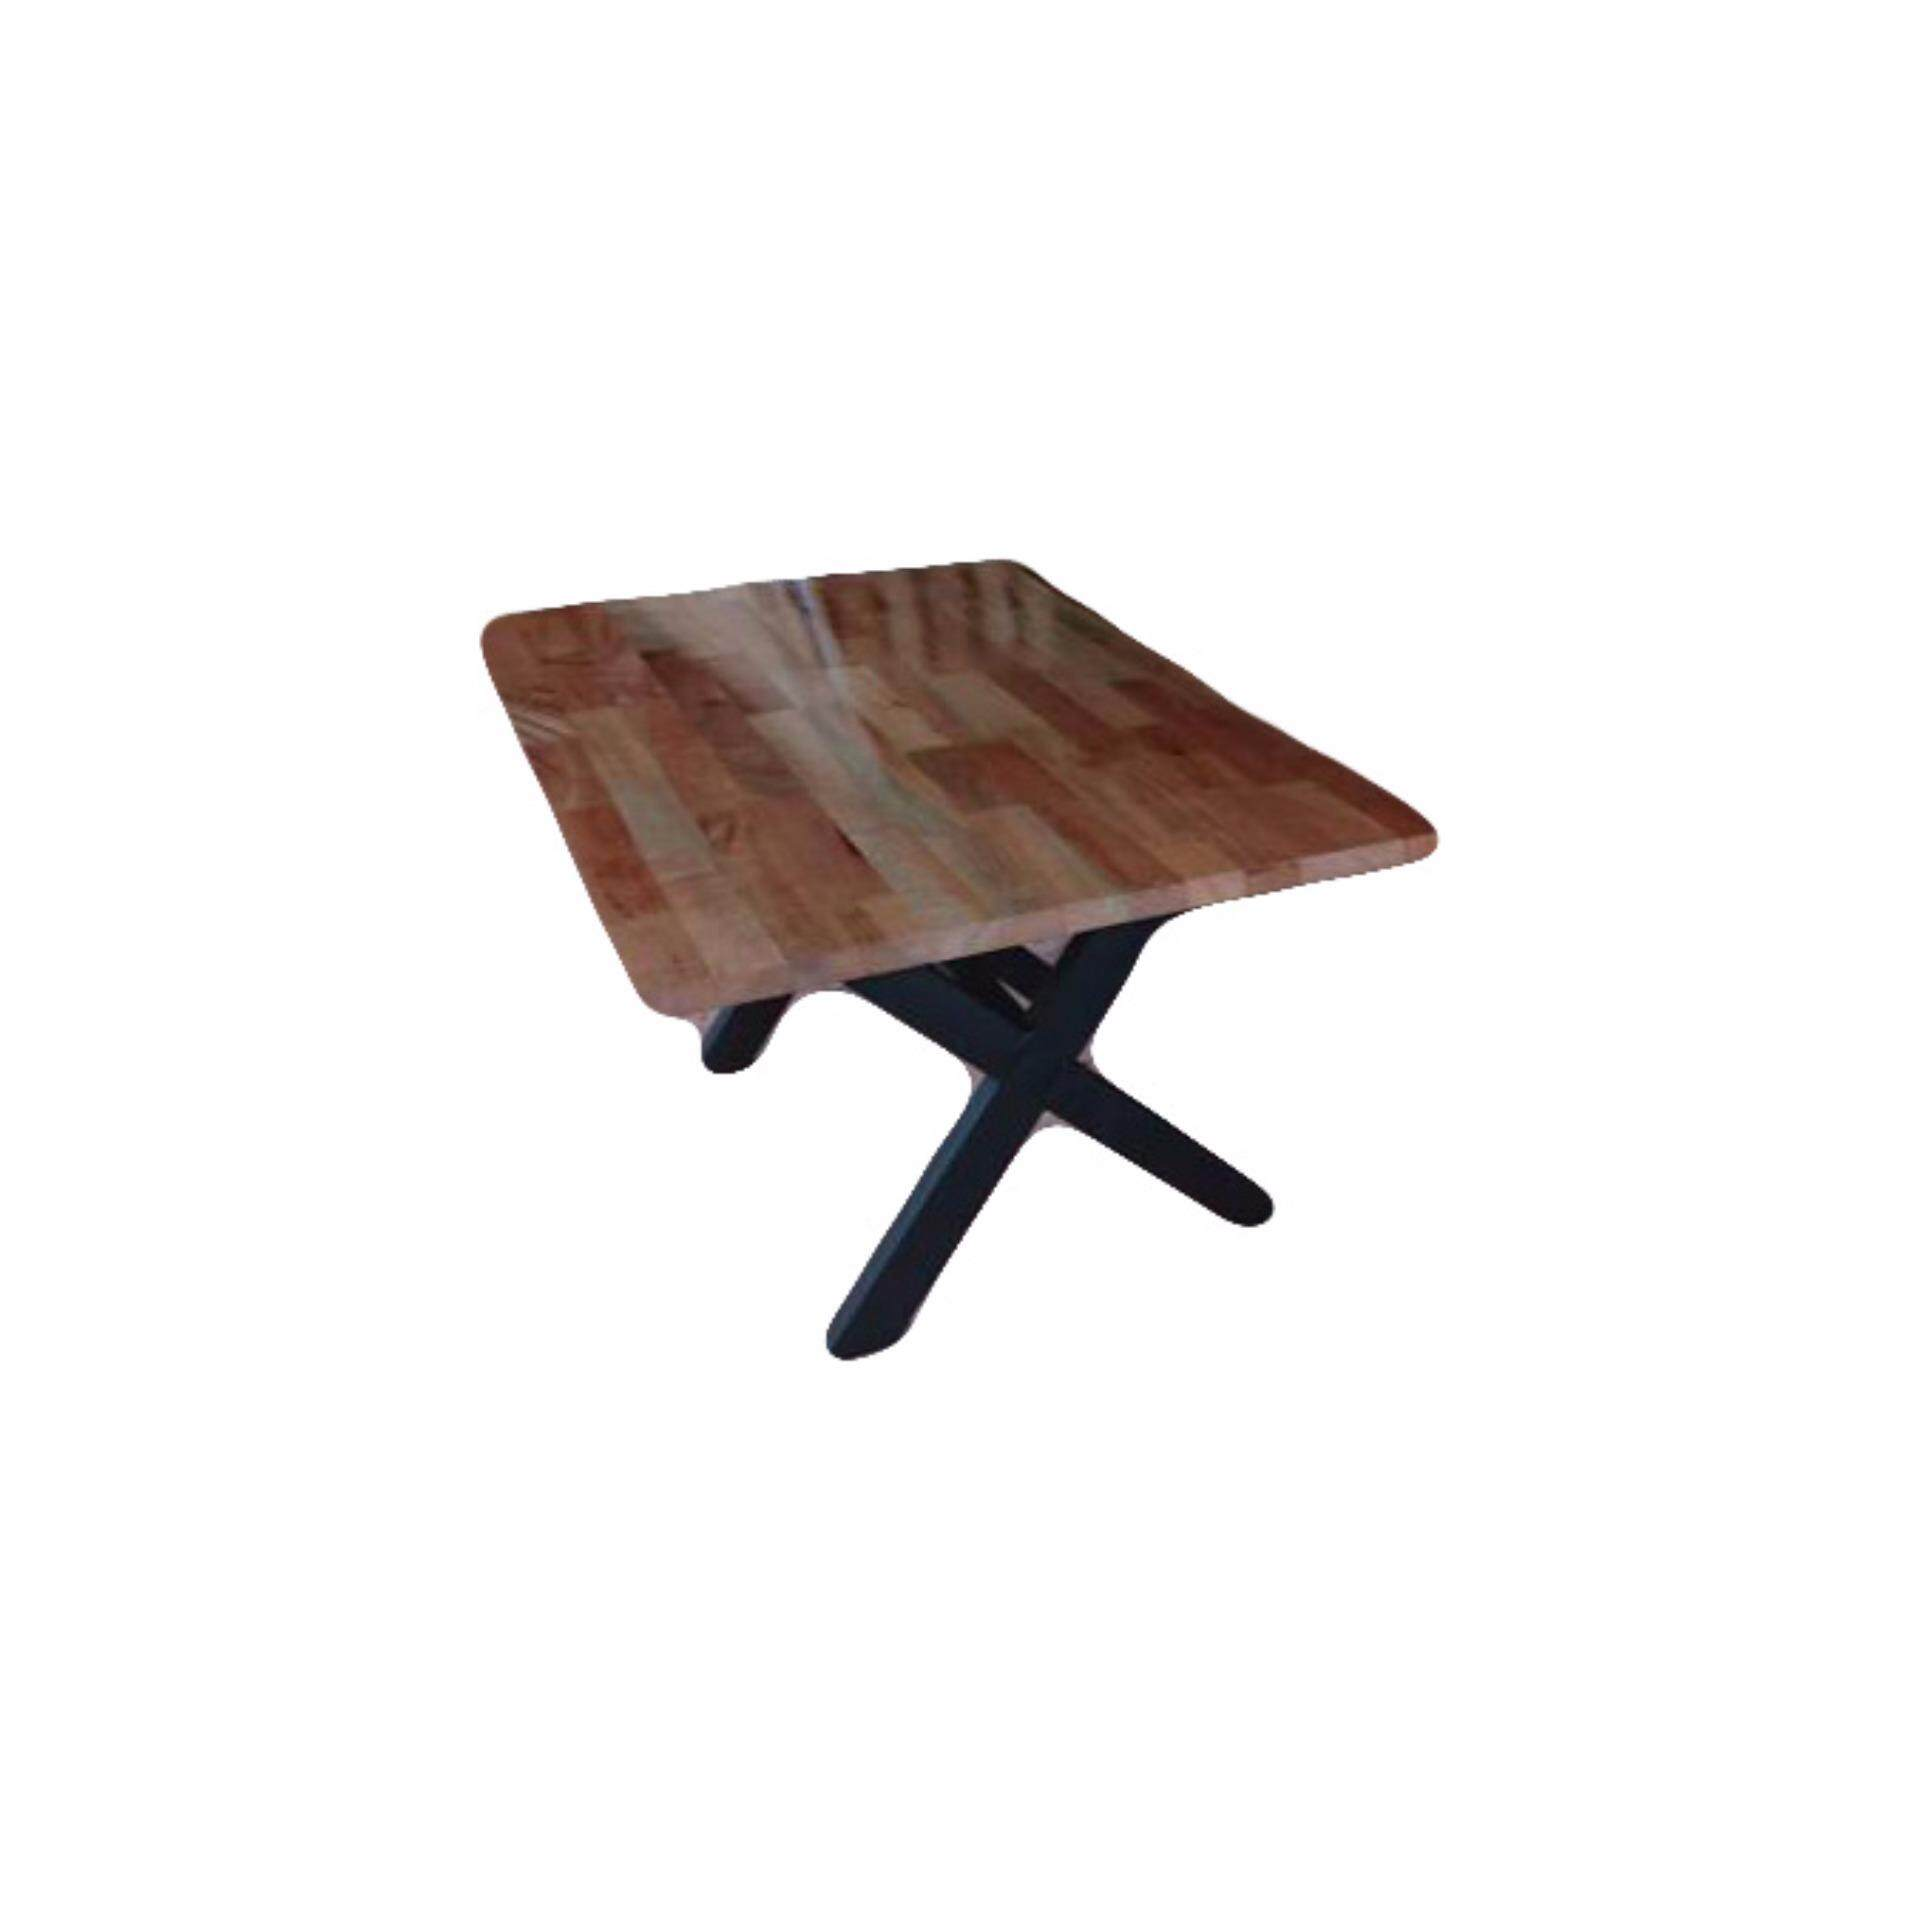 Dining/Meeting table with Meranti wood (brown) (6ft x 3ft x 2.5ft)